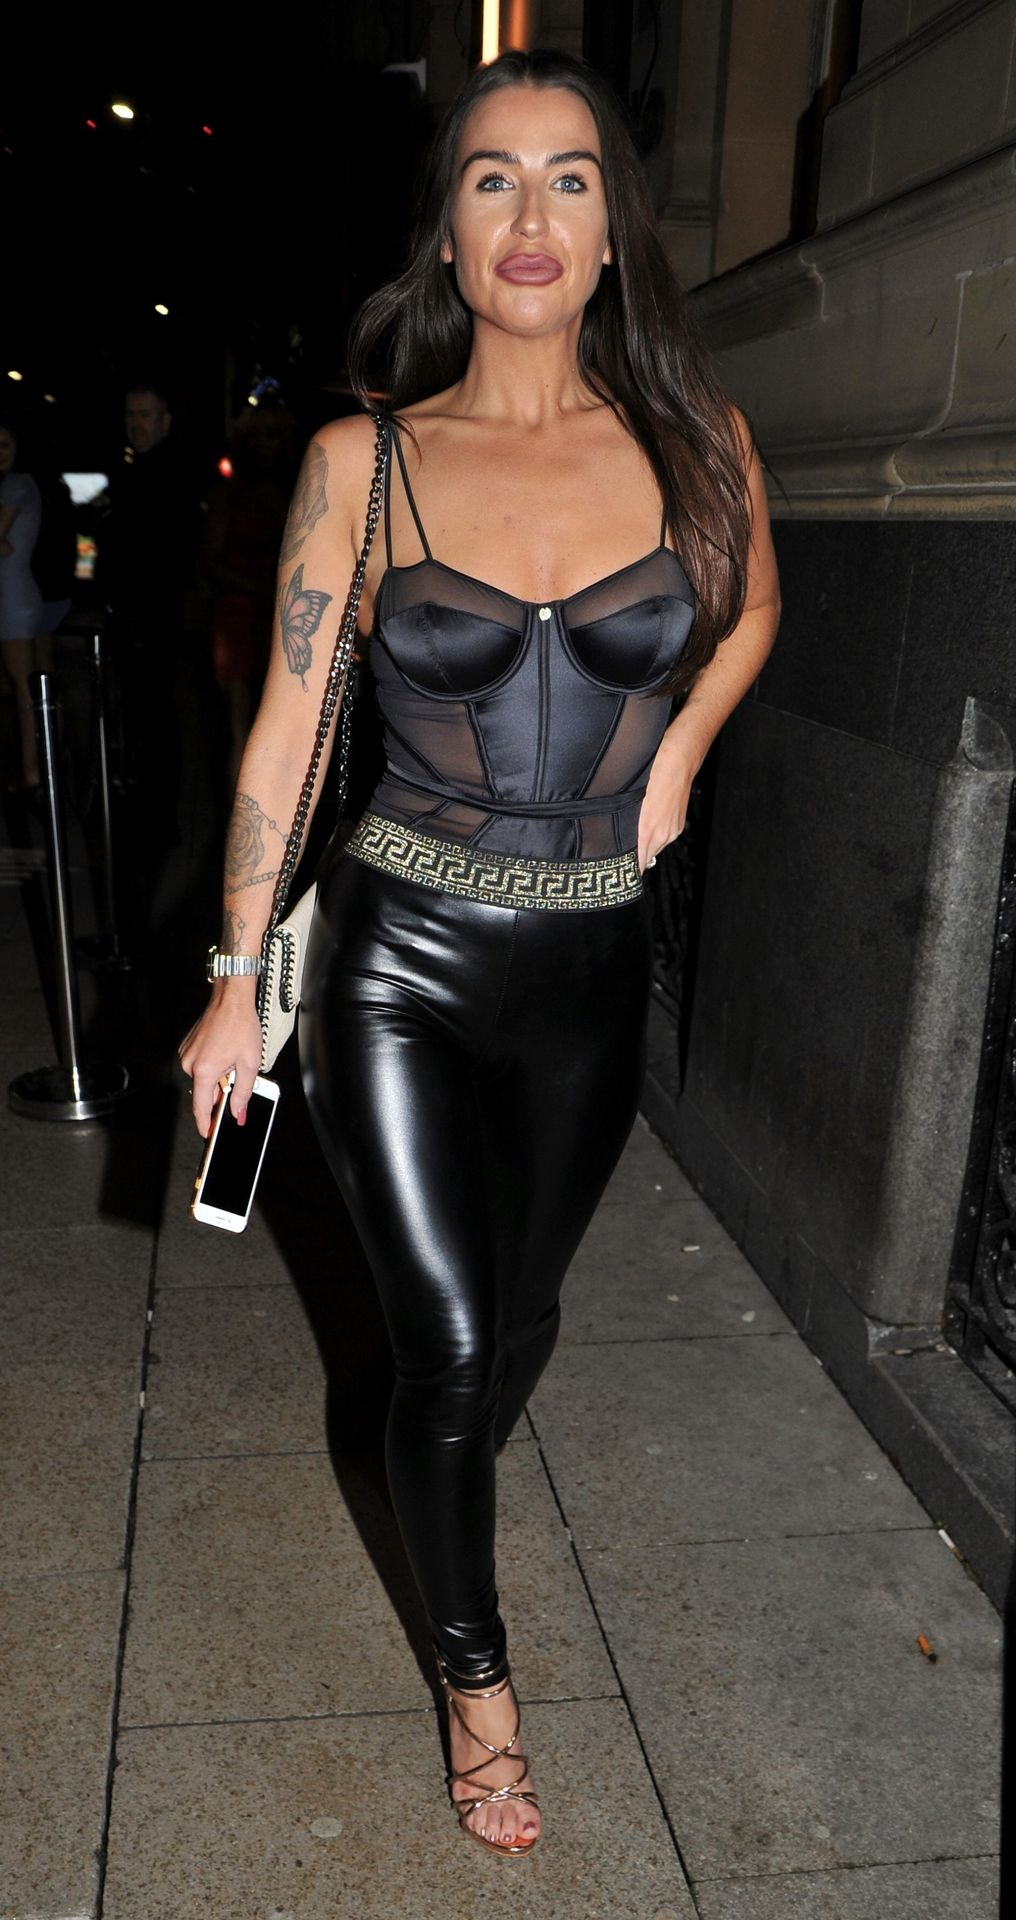 Sexy Jenny Thompson Is Seen at 186 Bar in Manchester (11 Photos)